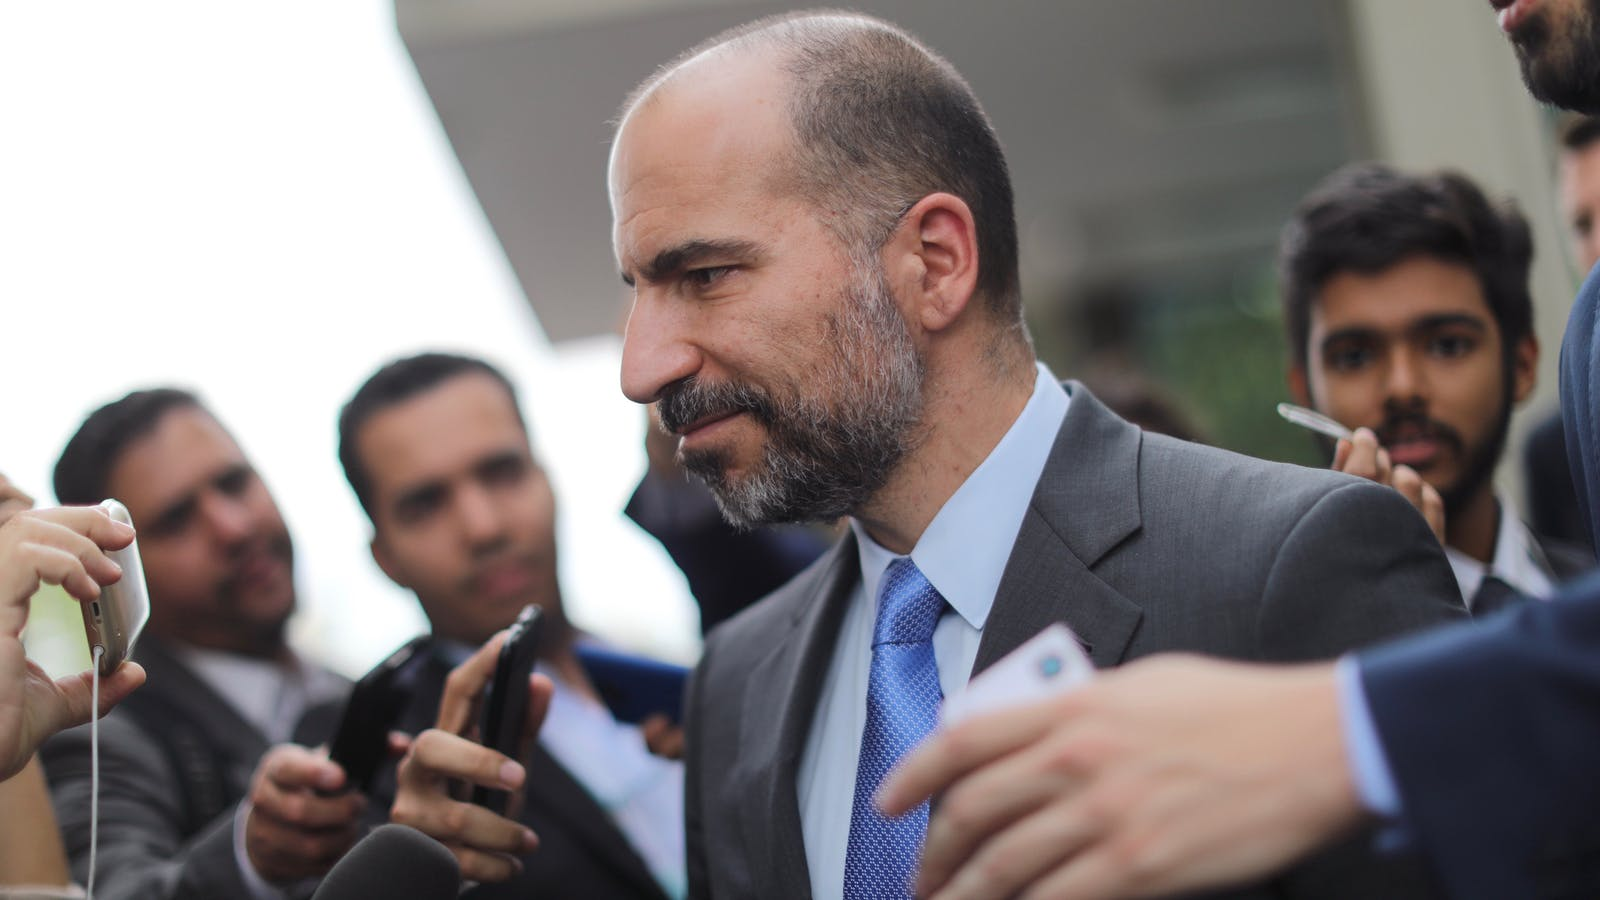 Uber CEO Dara Khosrowshahi after a meeting with Brazil's Finance Minister last month. Photo by Bloomberg.